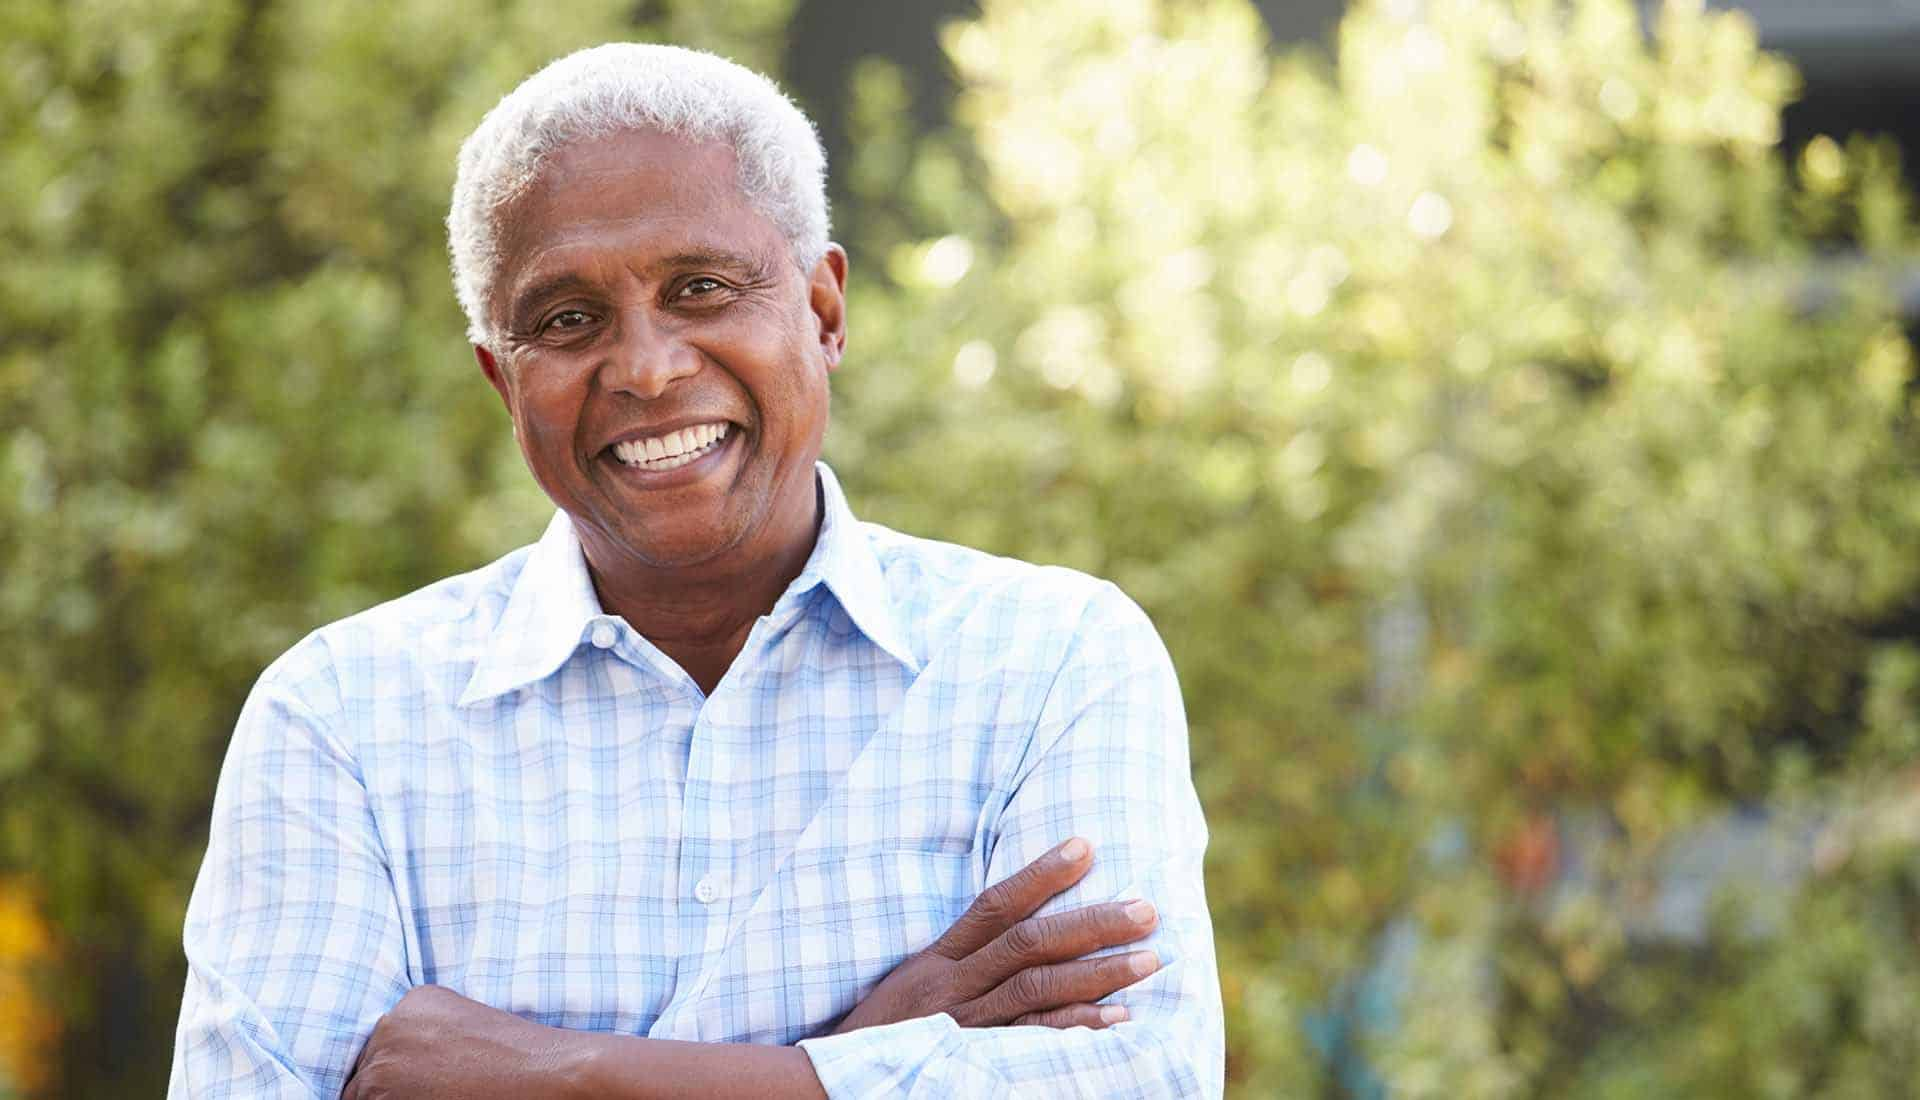 Smiling senior African American man with arms crossed.